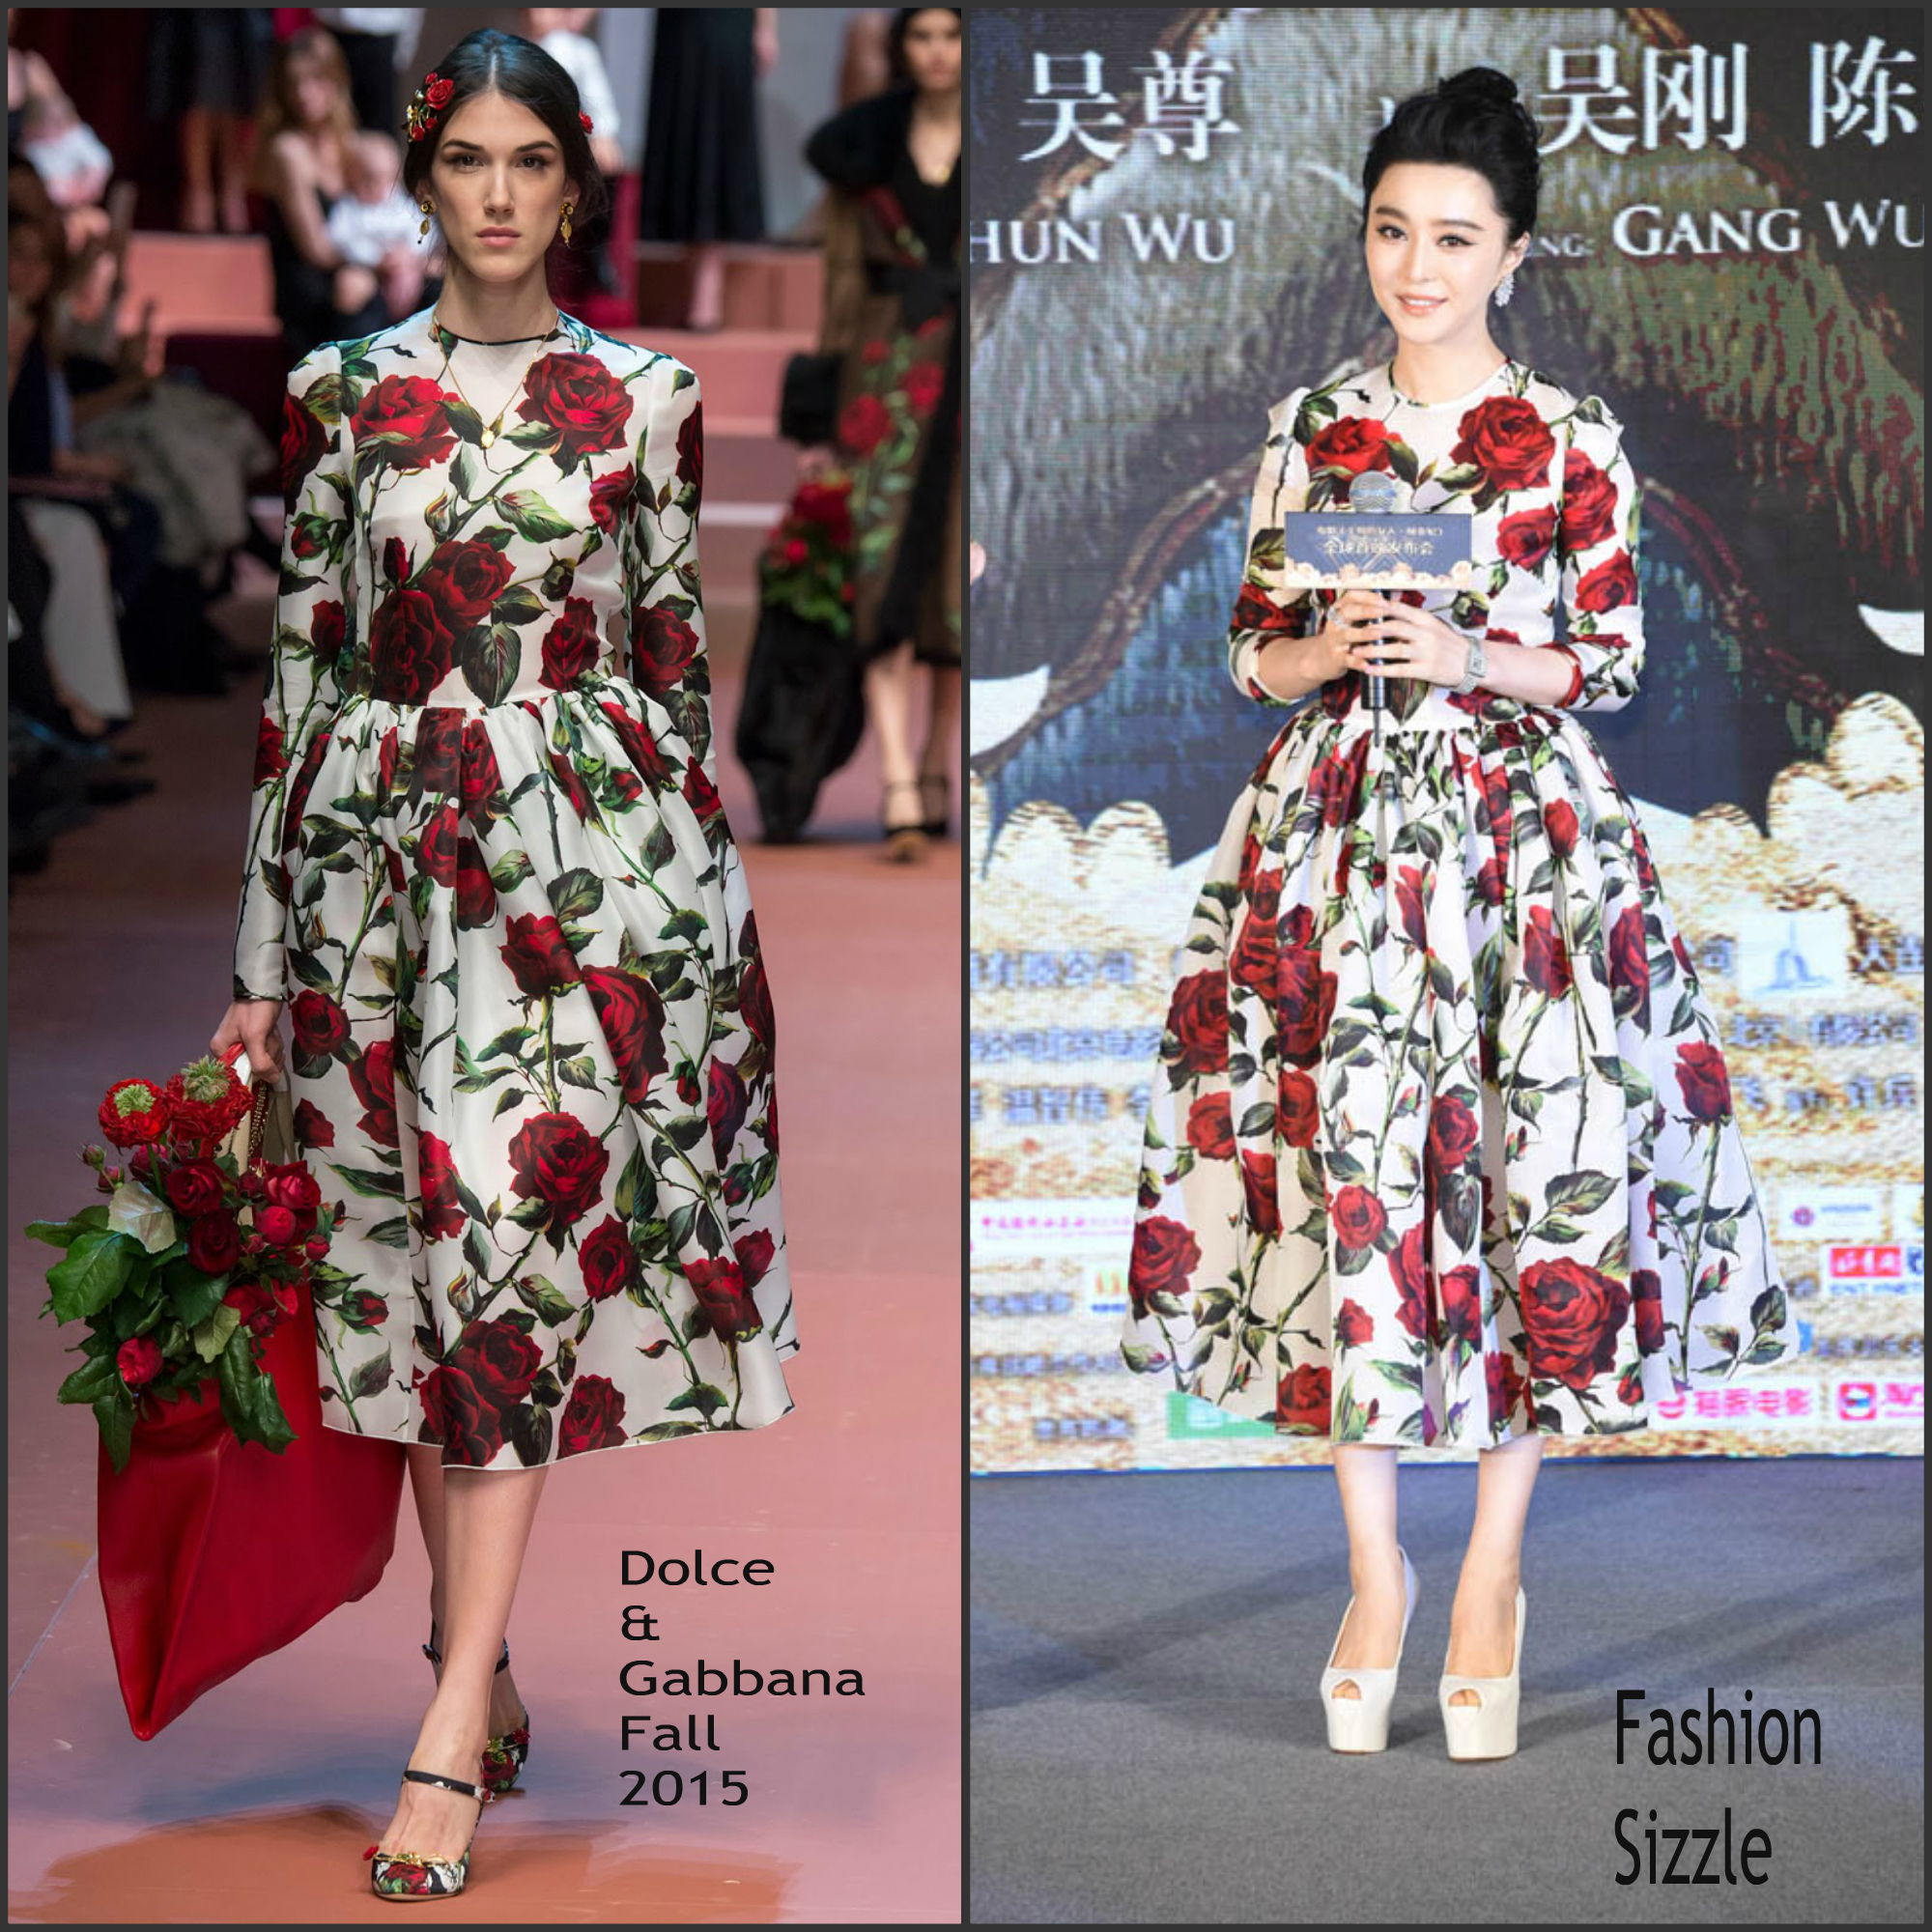 fan-bingbing-in-dolce-gabbana-lady-of-the-dynasty-beijing-press-conference